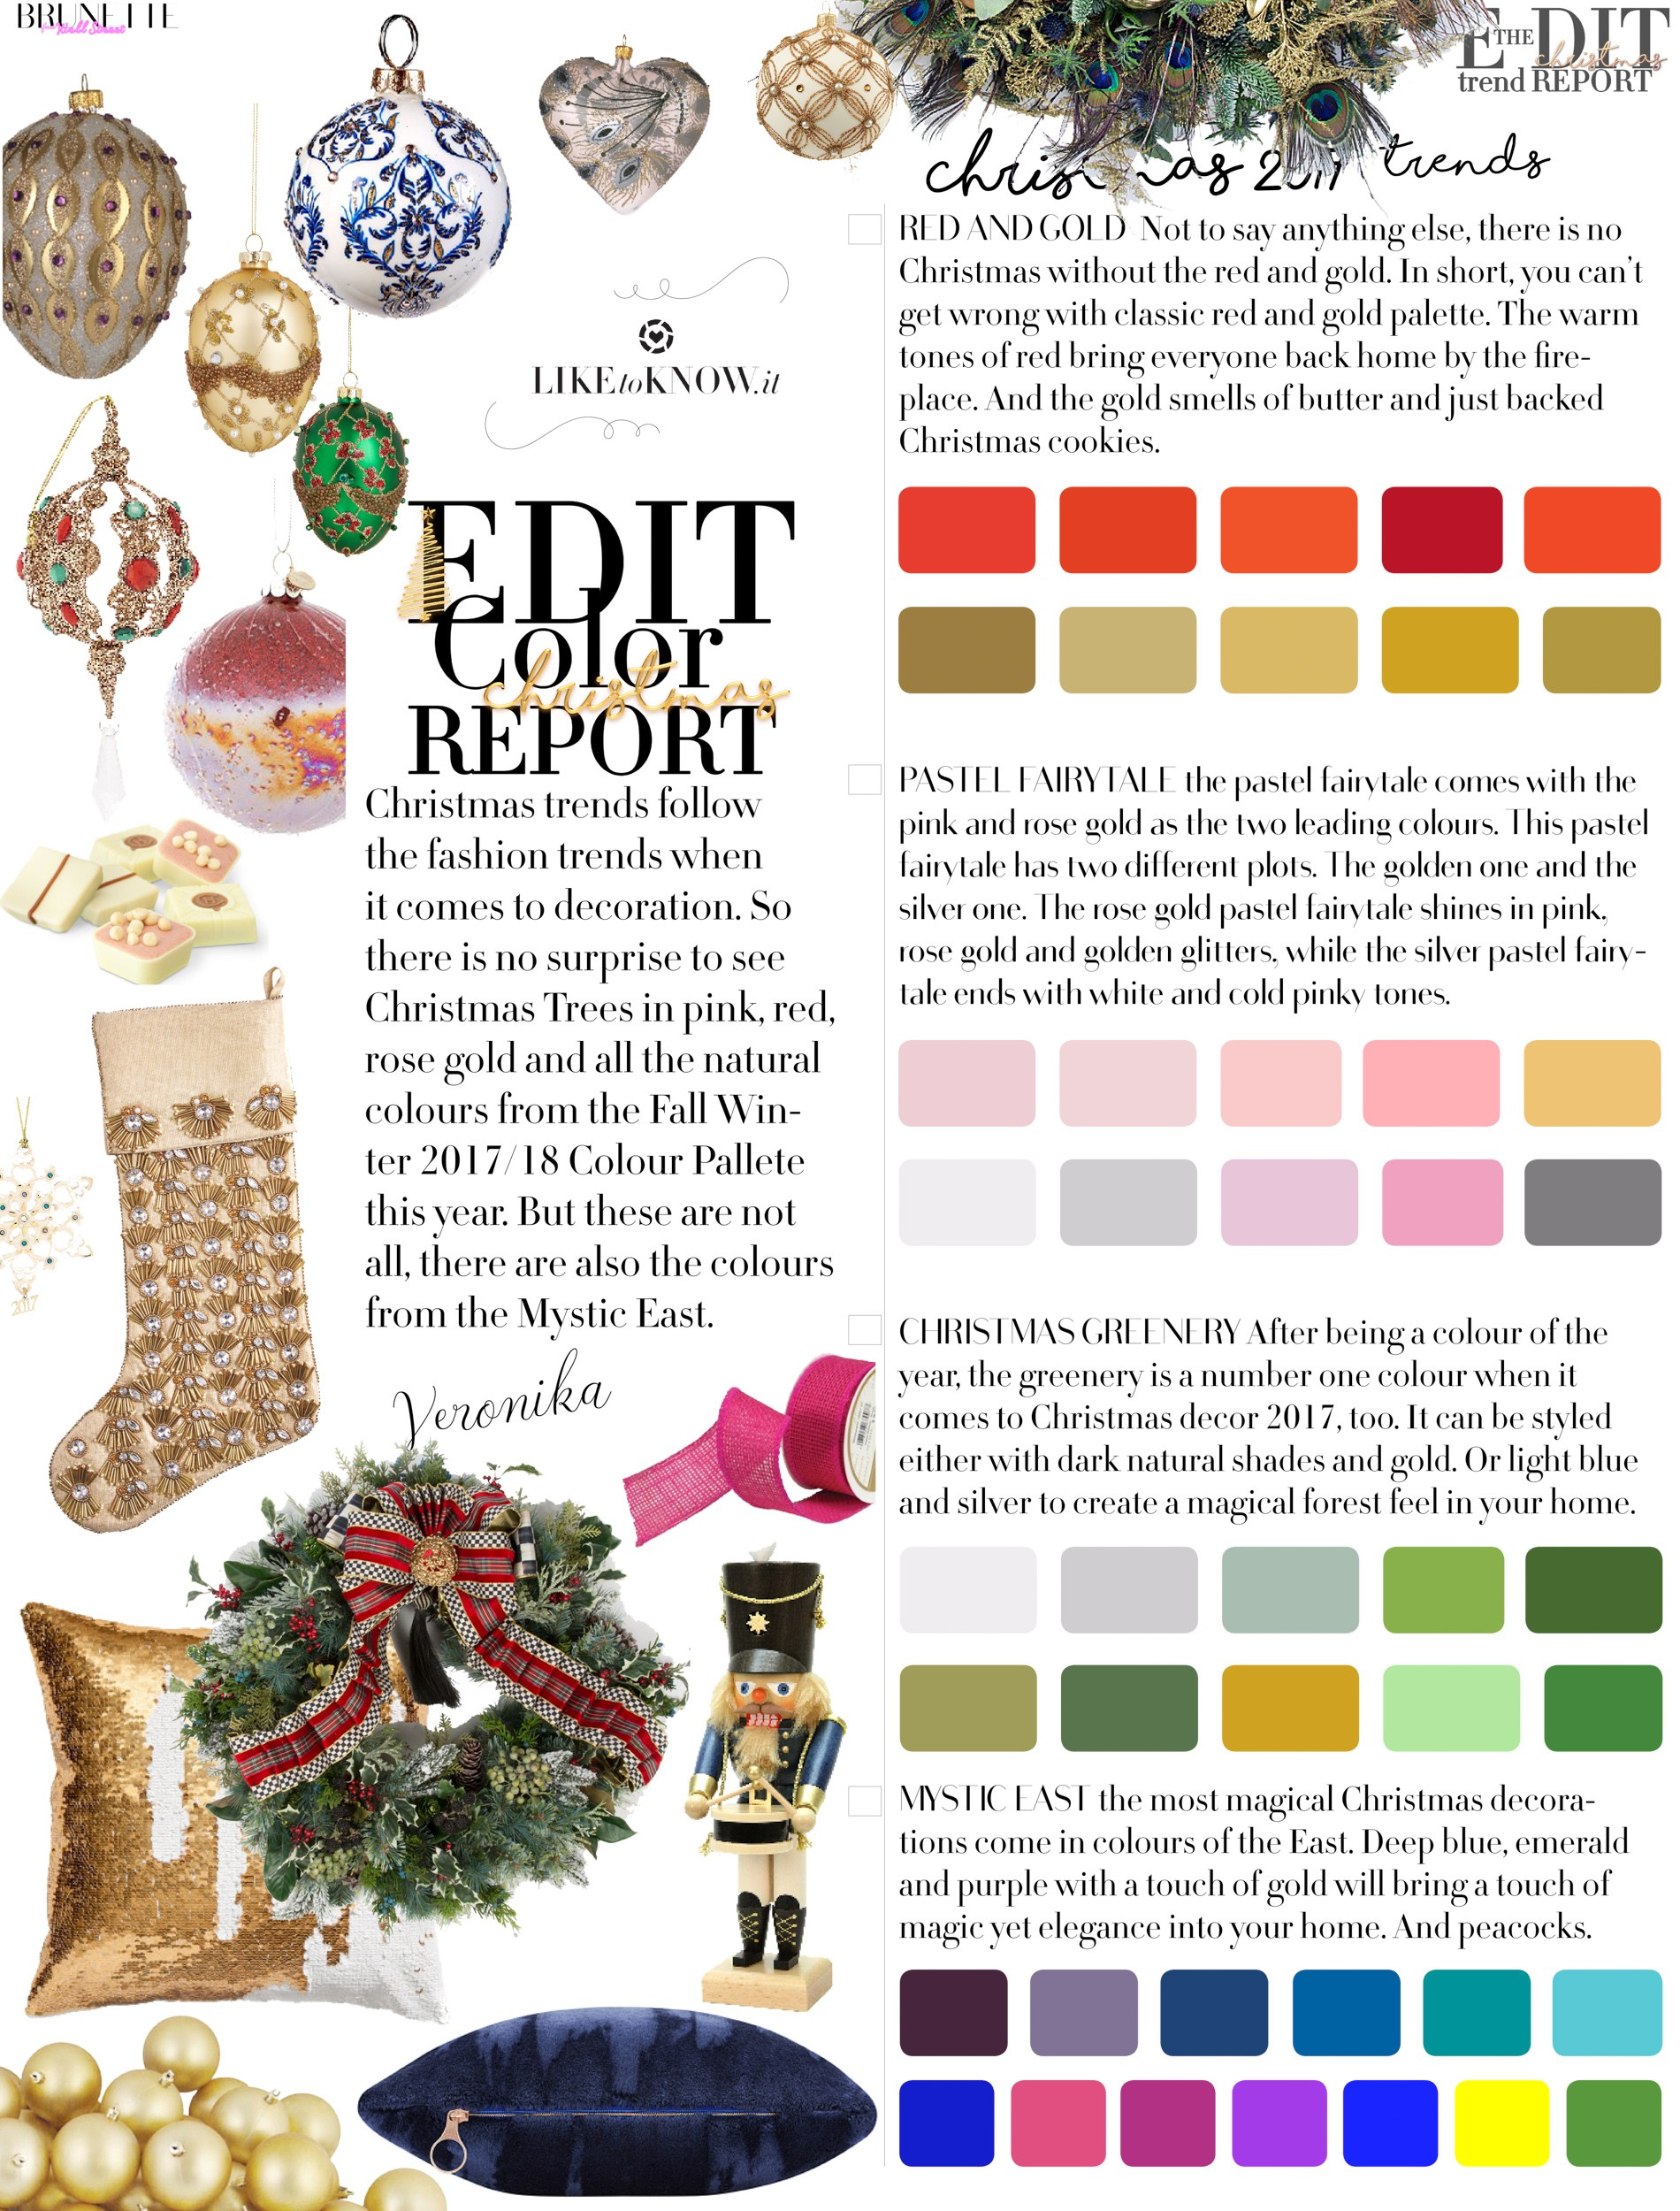 Christmas Trends You Wish You Knew in July | Brunette from Wall Street